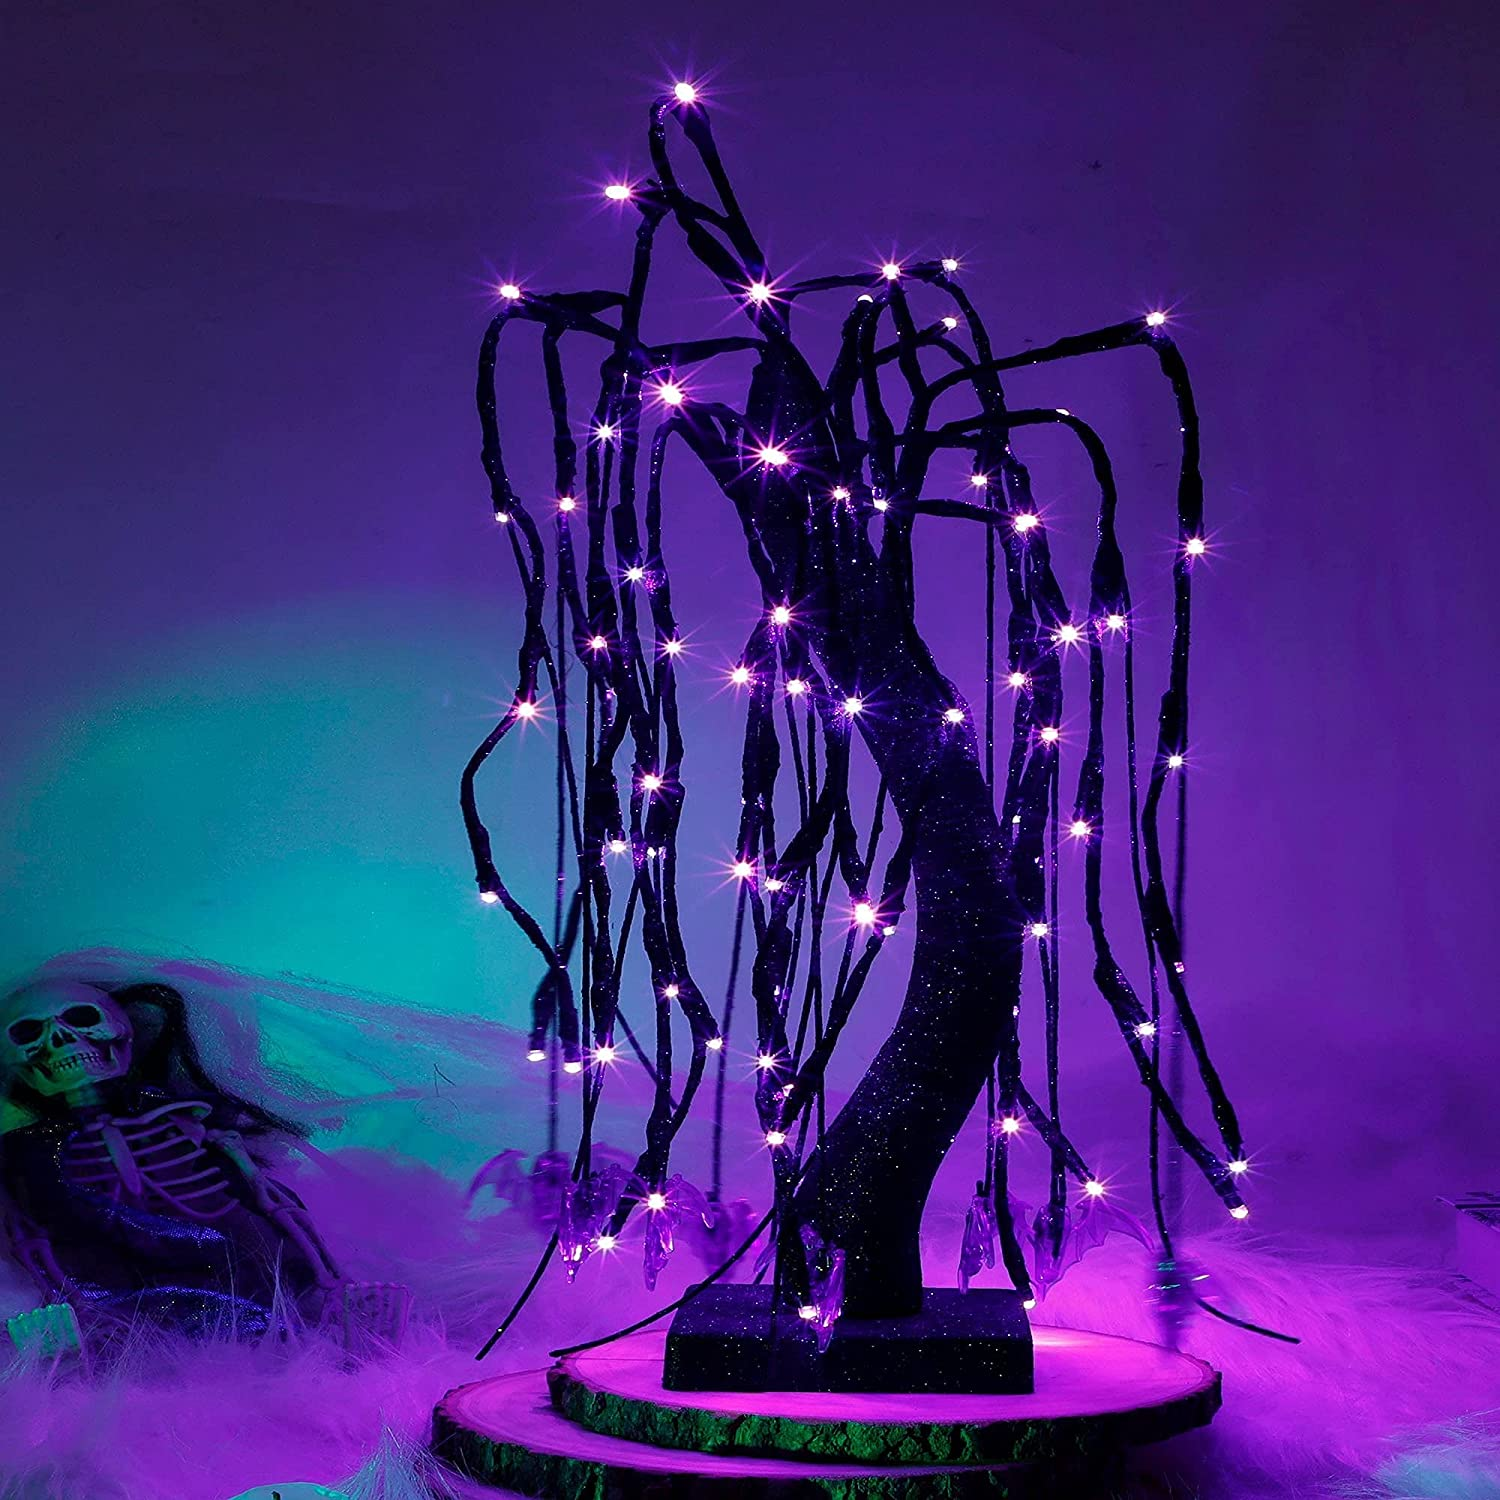 kemooie 20 Max 88% OFF Inch 80 Led Tabletop Willow Tree Halloween Be super welcome wit Lights